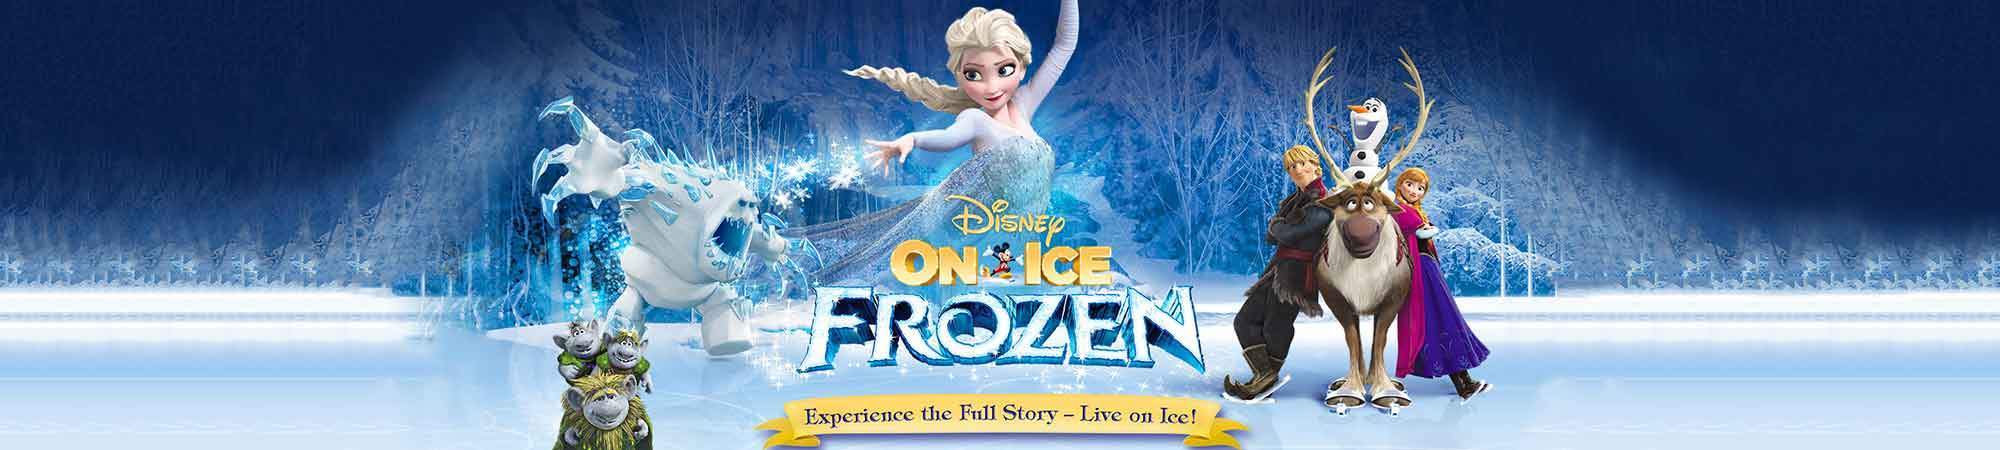 Little Bird Disney On Ice presents Frozen. The Family Favourite Comes Alive On The Ice For A Magical Day Out!